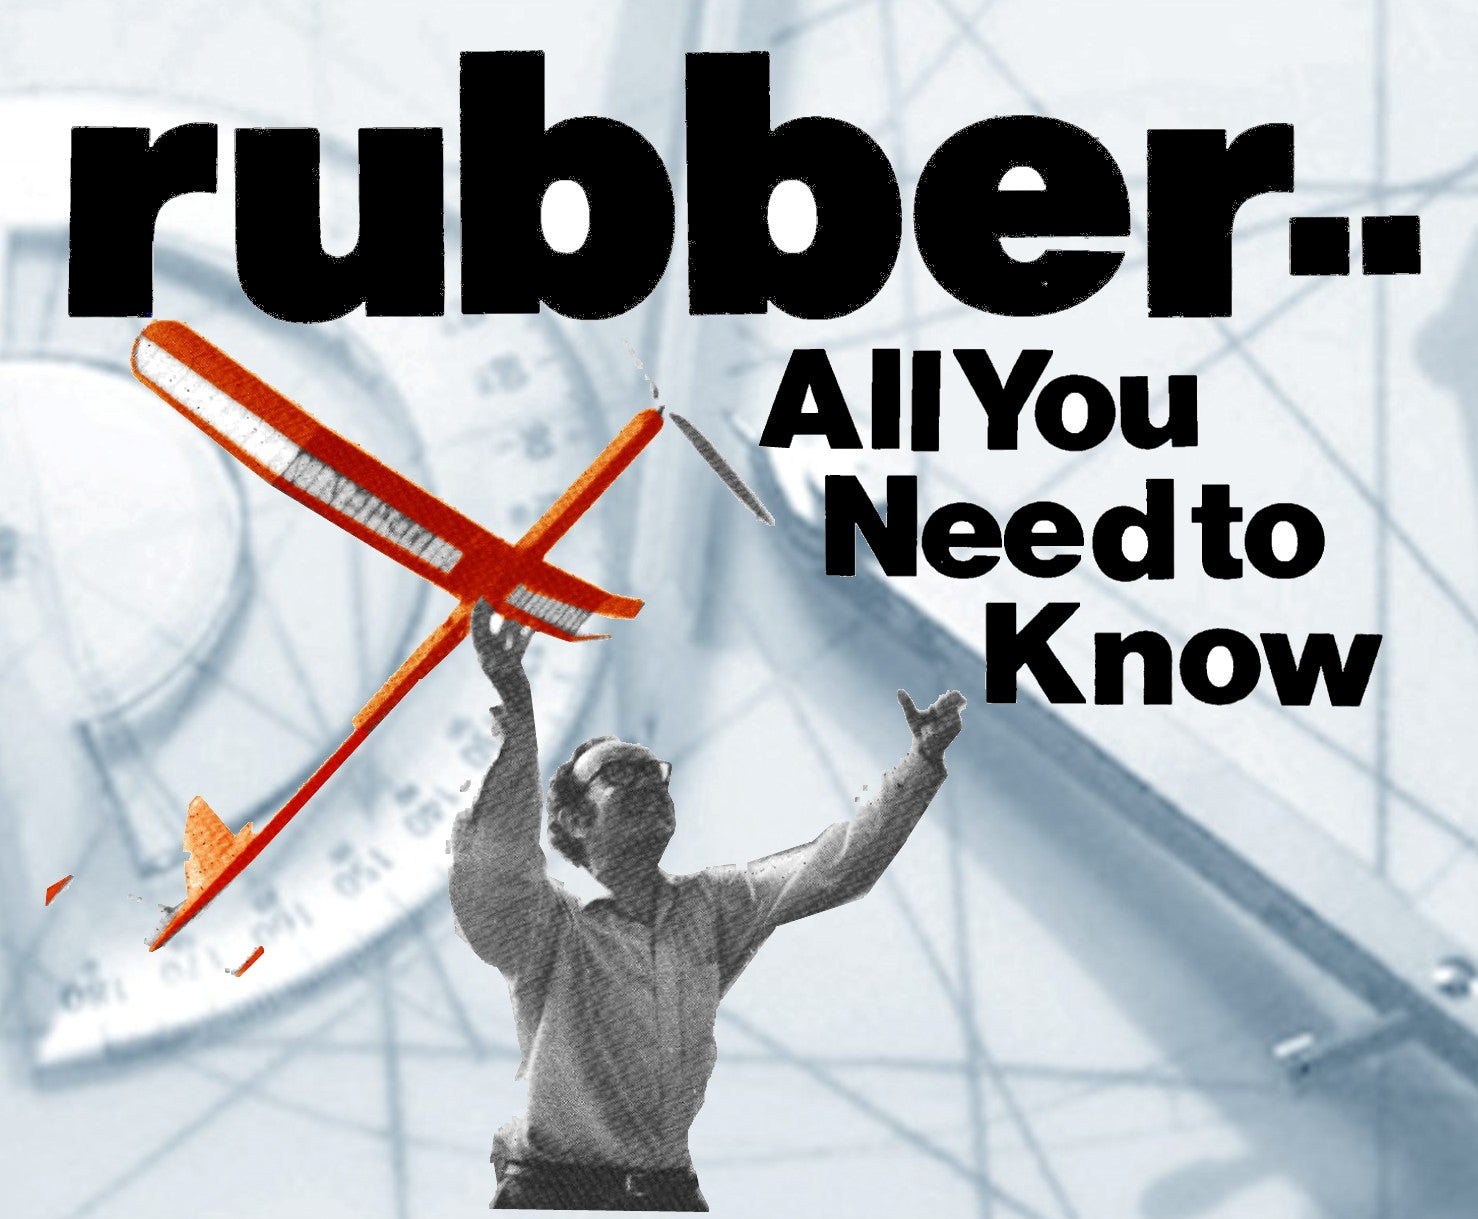 ALL YOU NEED TO KNOW ABOUT RUBBER